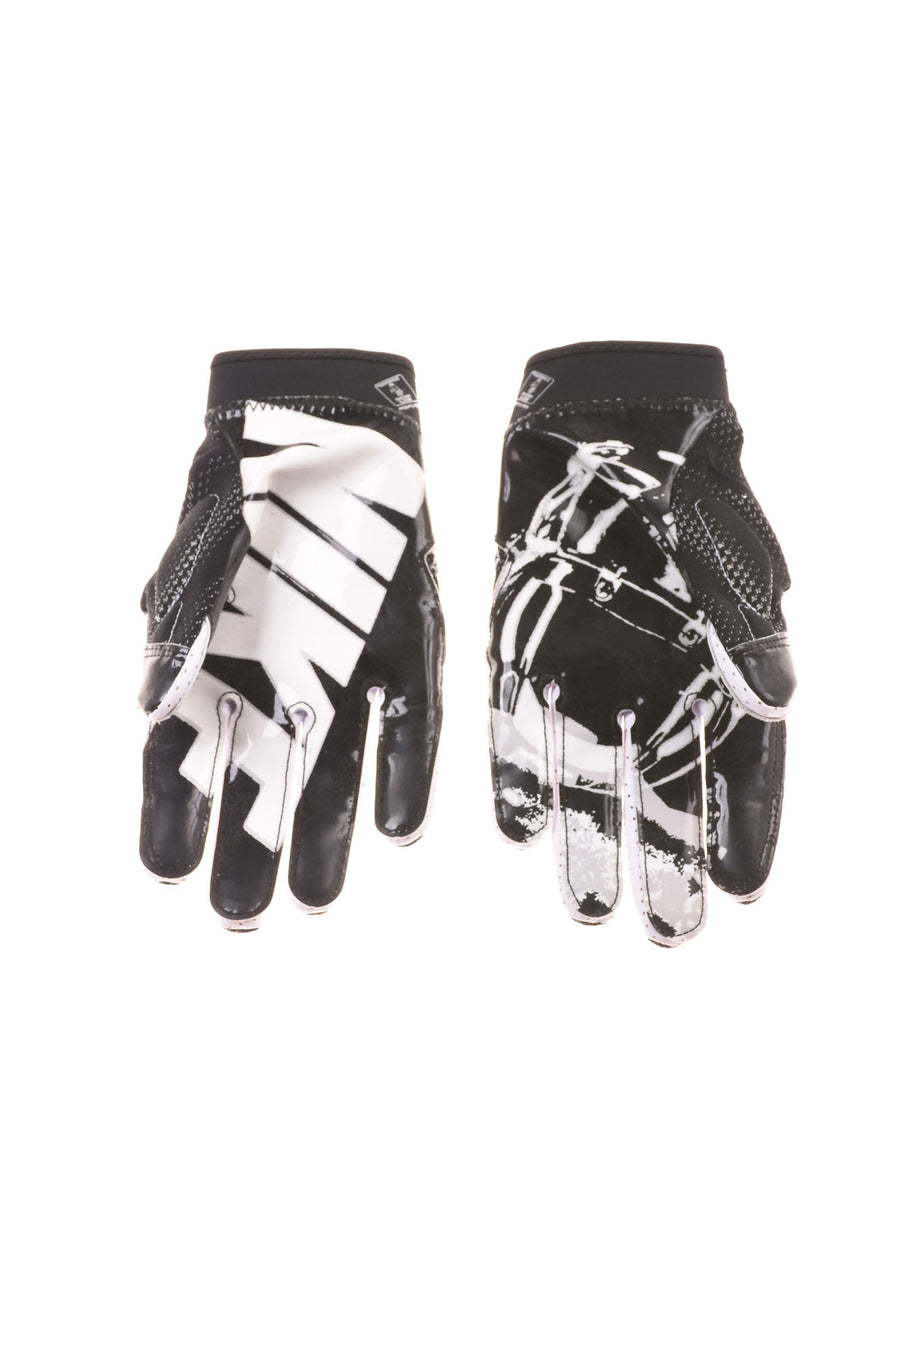 USED Nike Baseball Gloves Medium Black